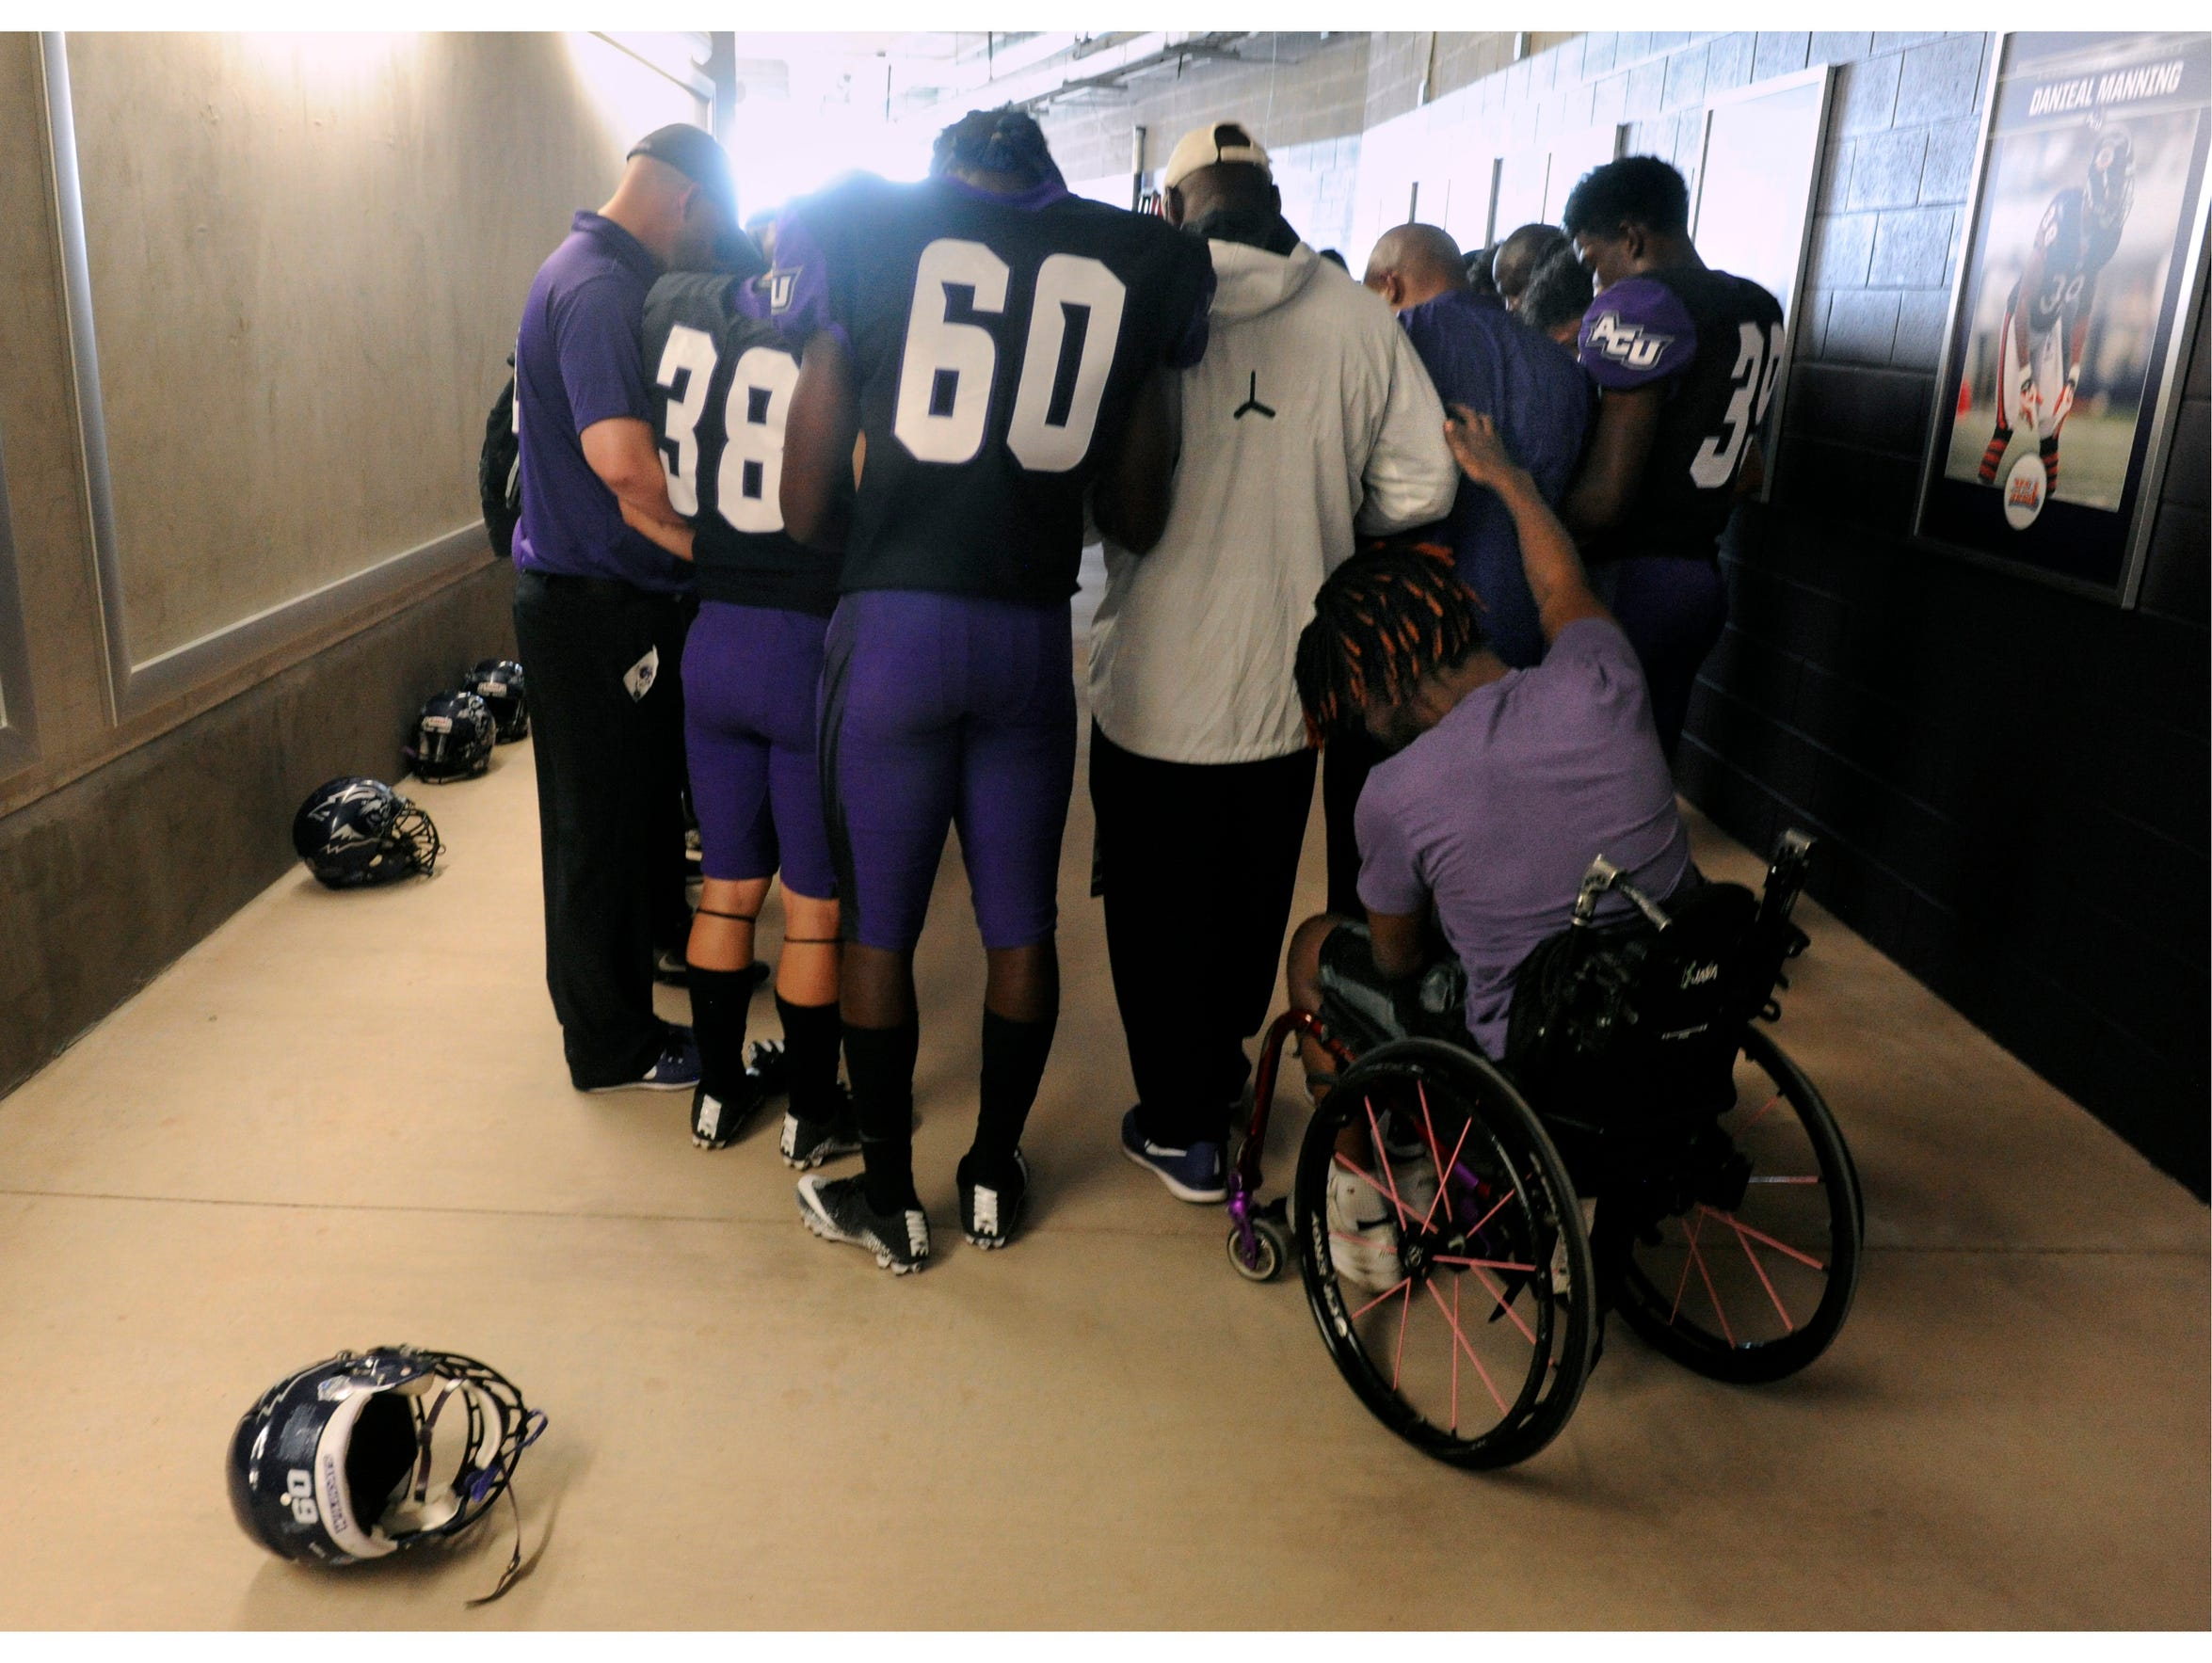 Outside the Wildcat locker room, J.R. Hall puts a hand